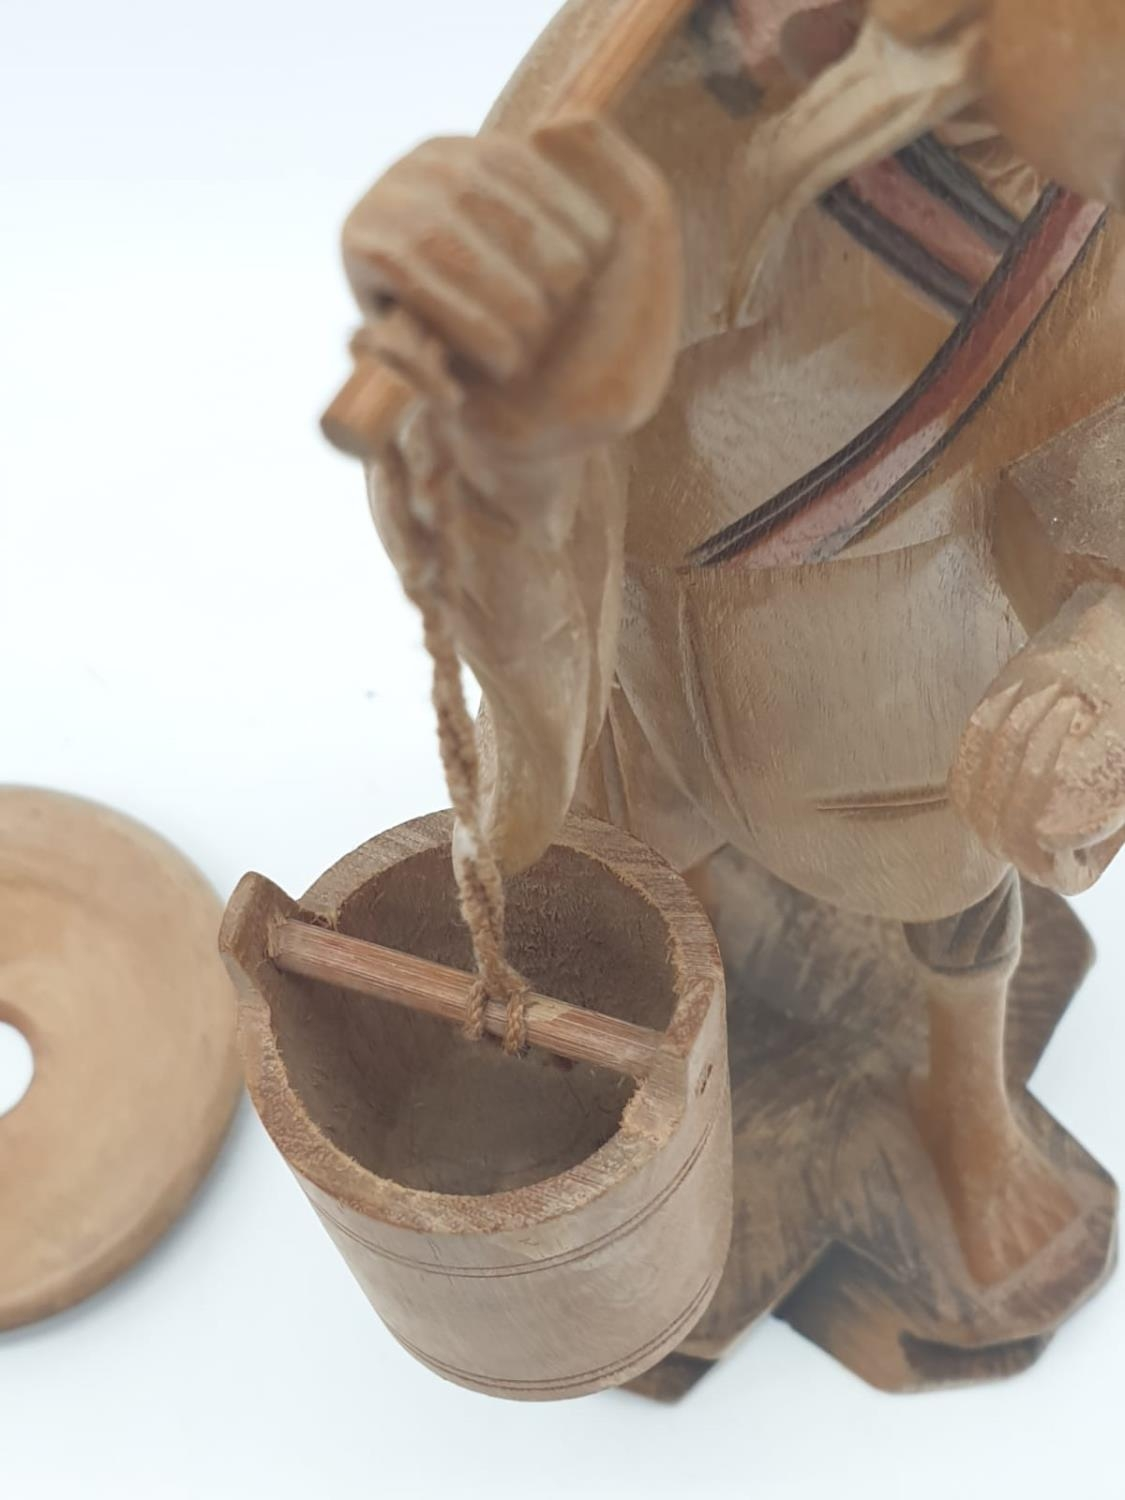 Hand carved wooden figure a Chinese pedlar. 20cm tall. - Image 6 of 7